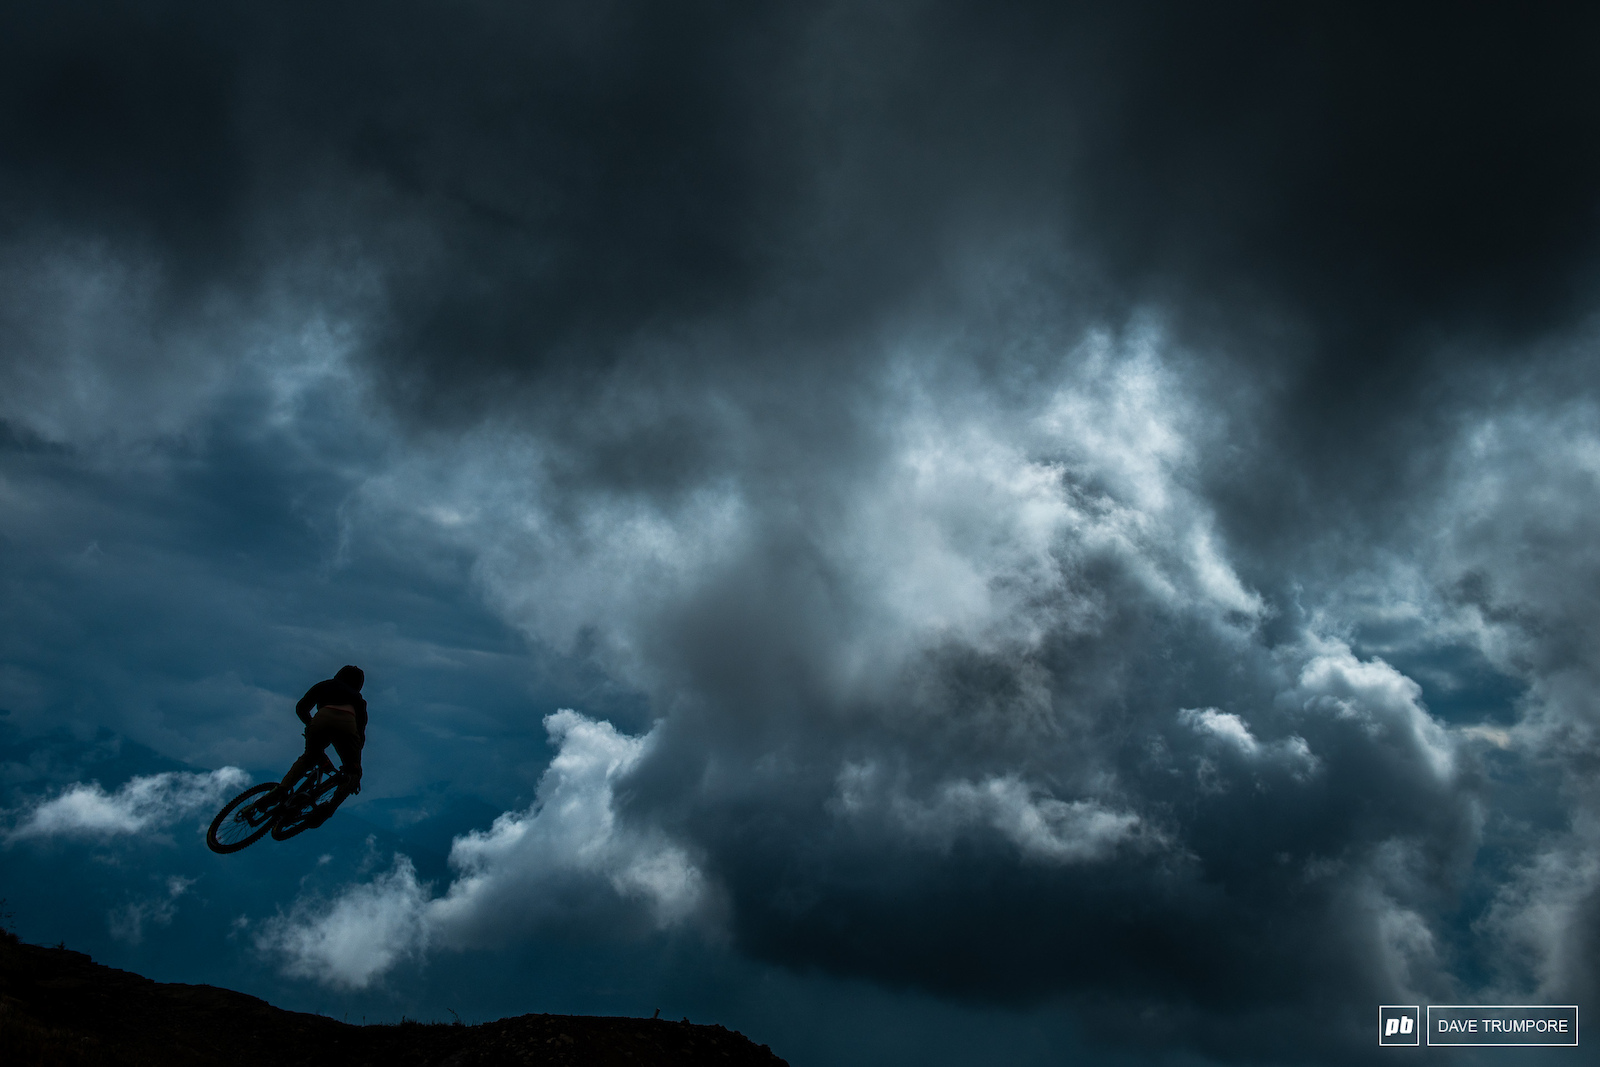 Stormy skies made for a dramatic backdrop on Stage 5